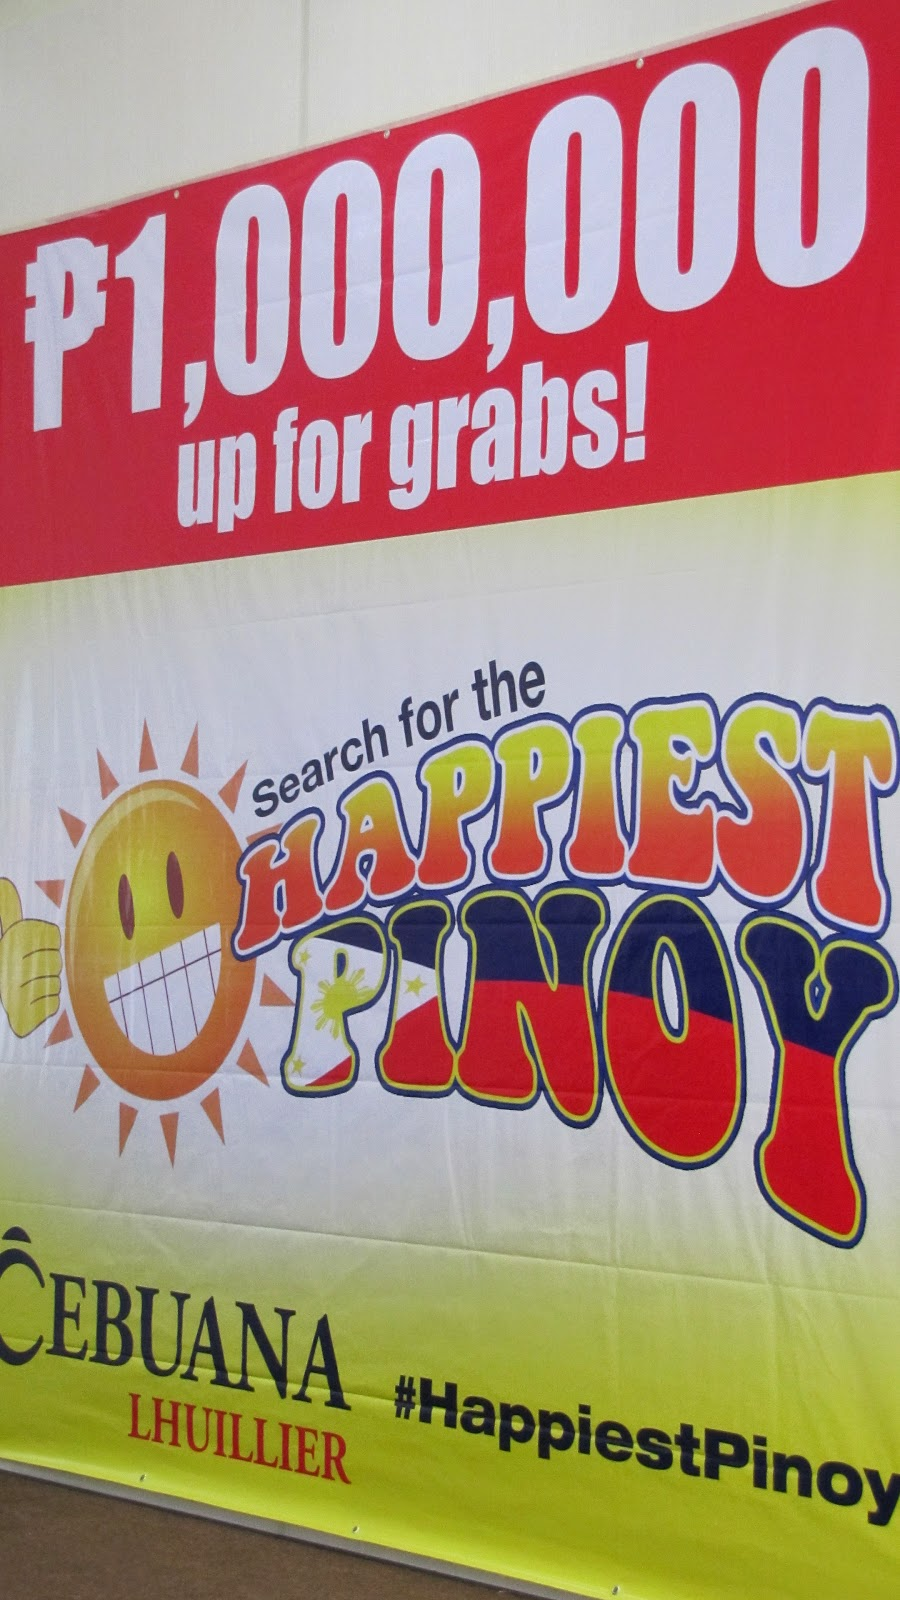 Cebuana Lhuillier's Seach for the Happiest Pinoy, #HappiestPinoy, Cebuana Lhuillier, Happiest Pinoy 2015, Happiest Pinoy, Pinoy